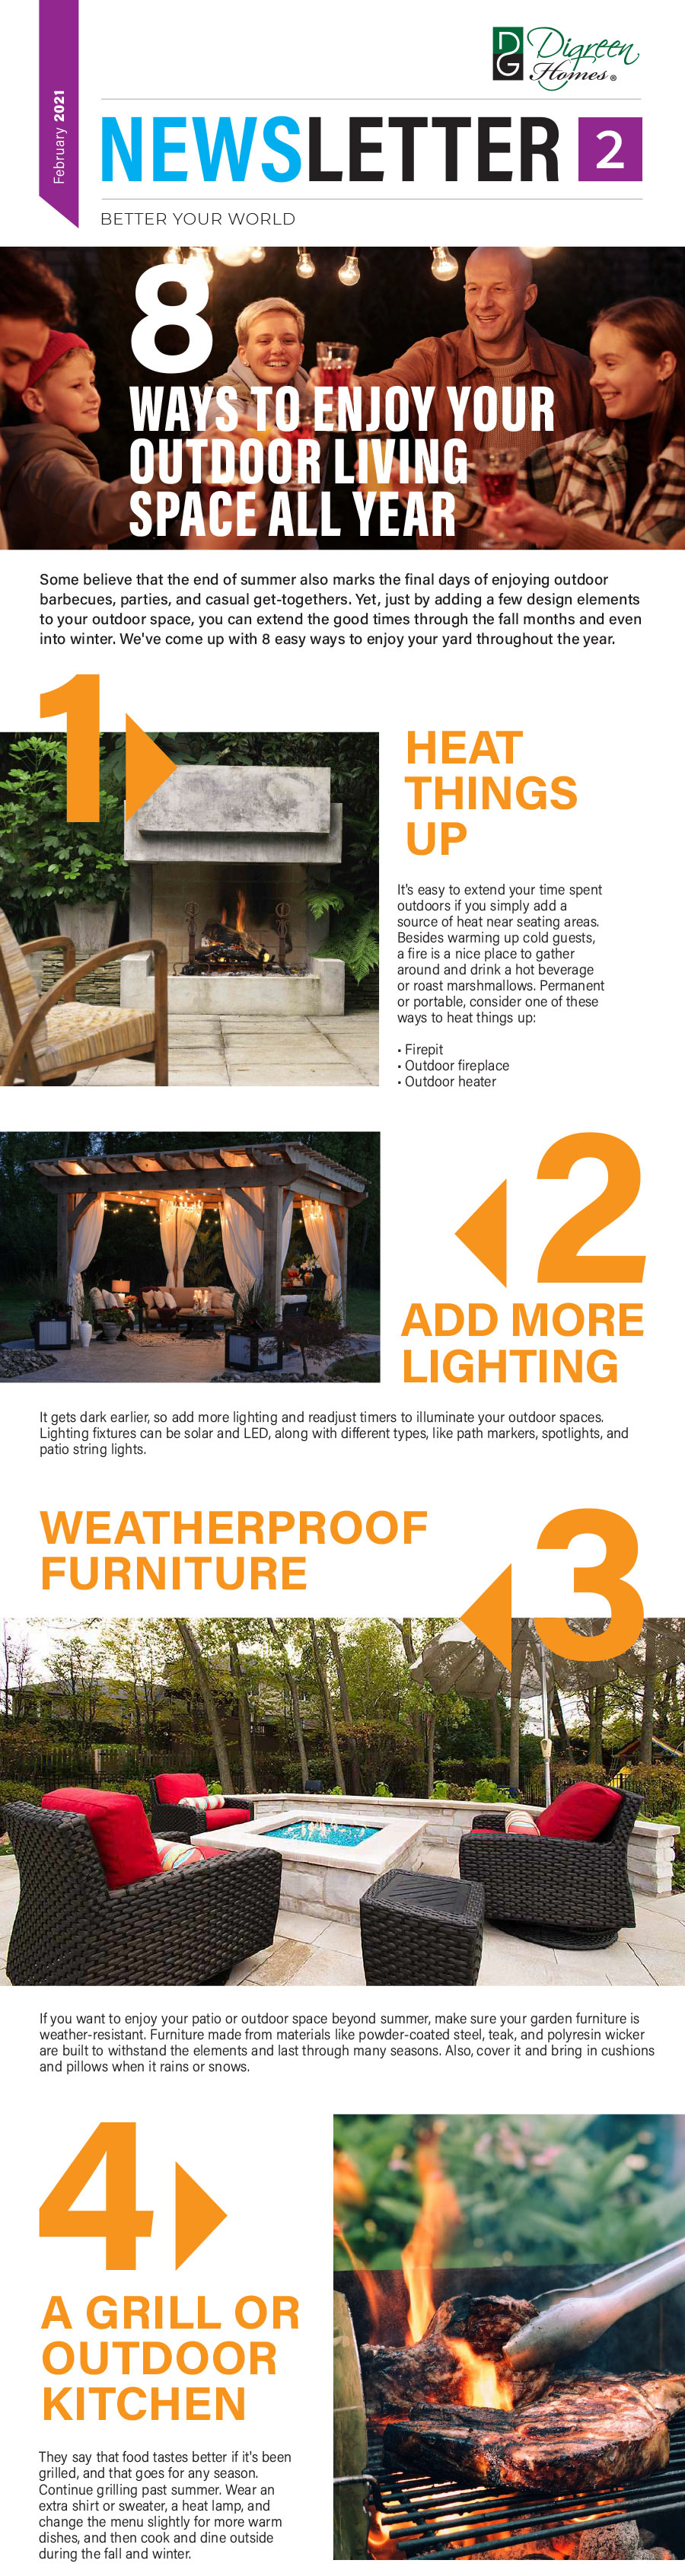 8 WAYS TO ENJOY YOUR OUTDOOR LIVING SPACE ALL YEAR.